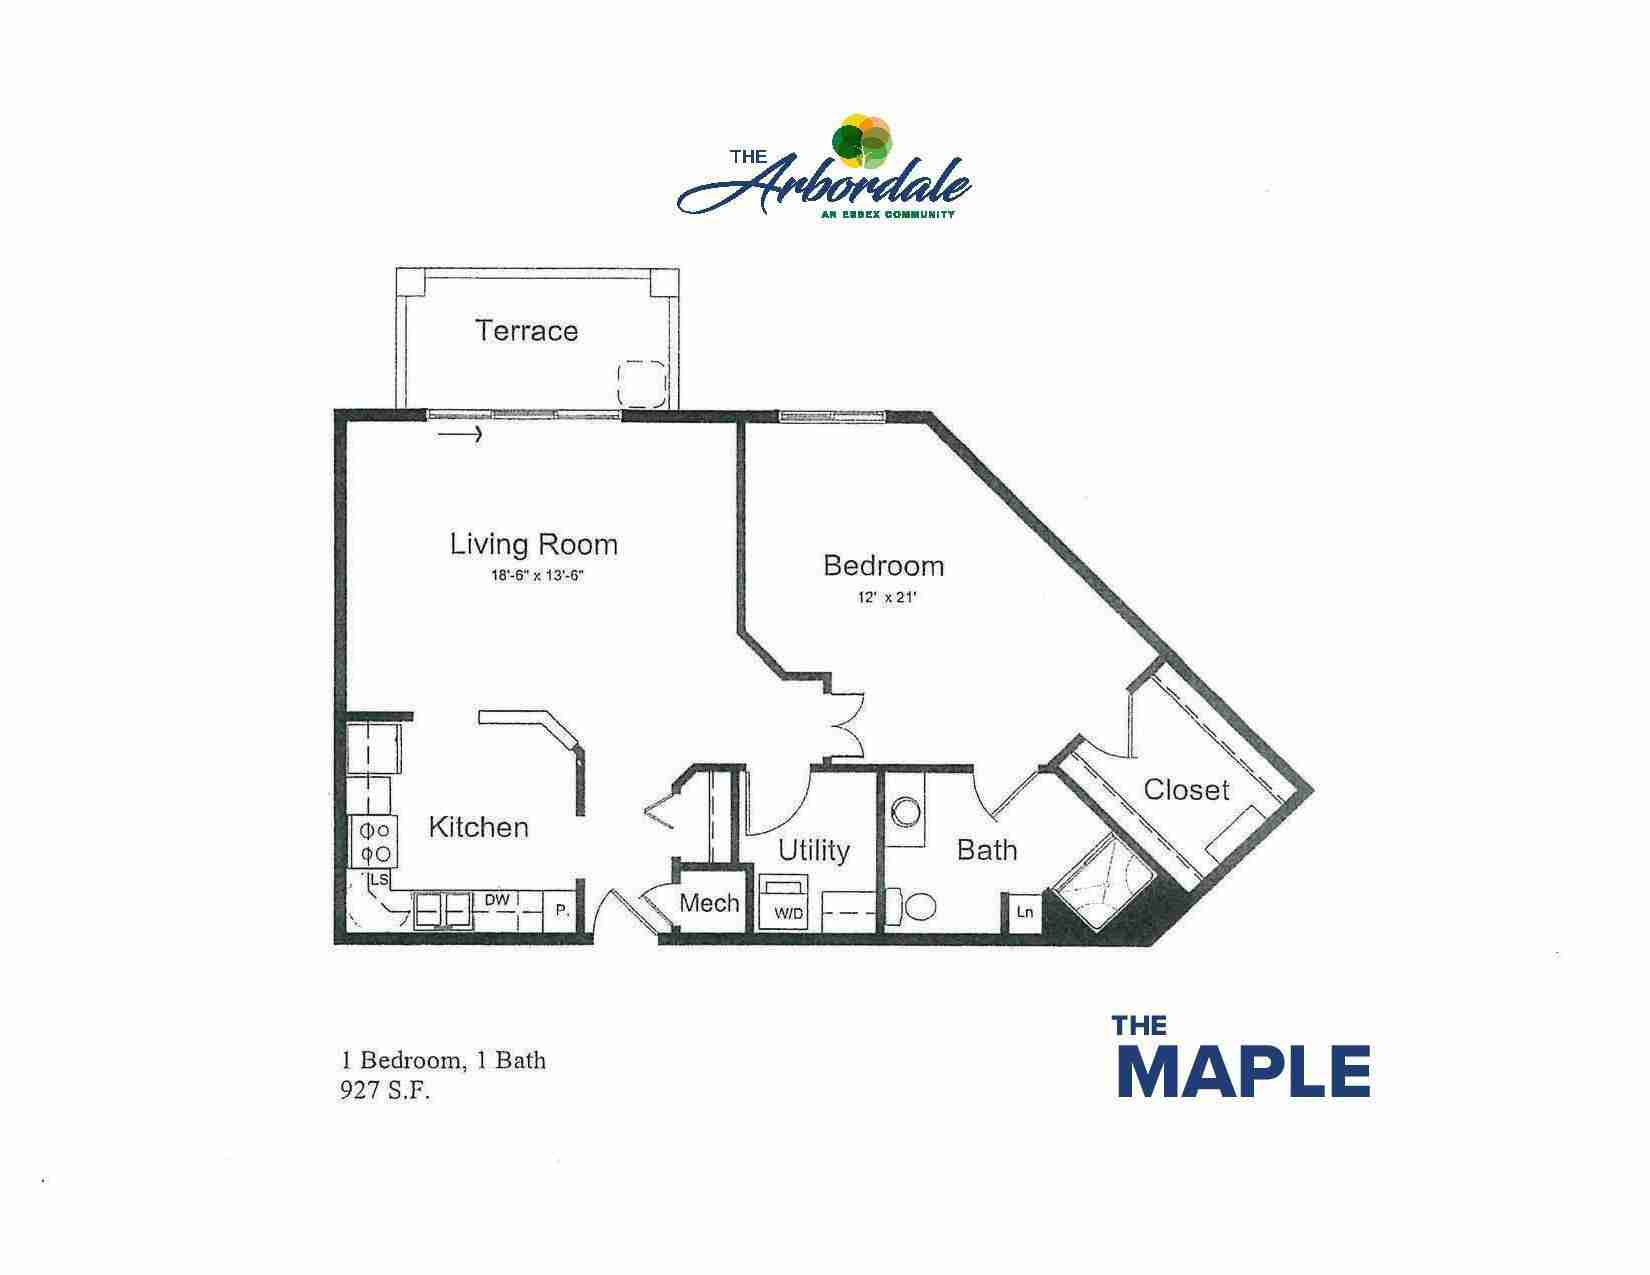 the maple floor plan, 1 bedroom, 1 bath, 927 sq ft